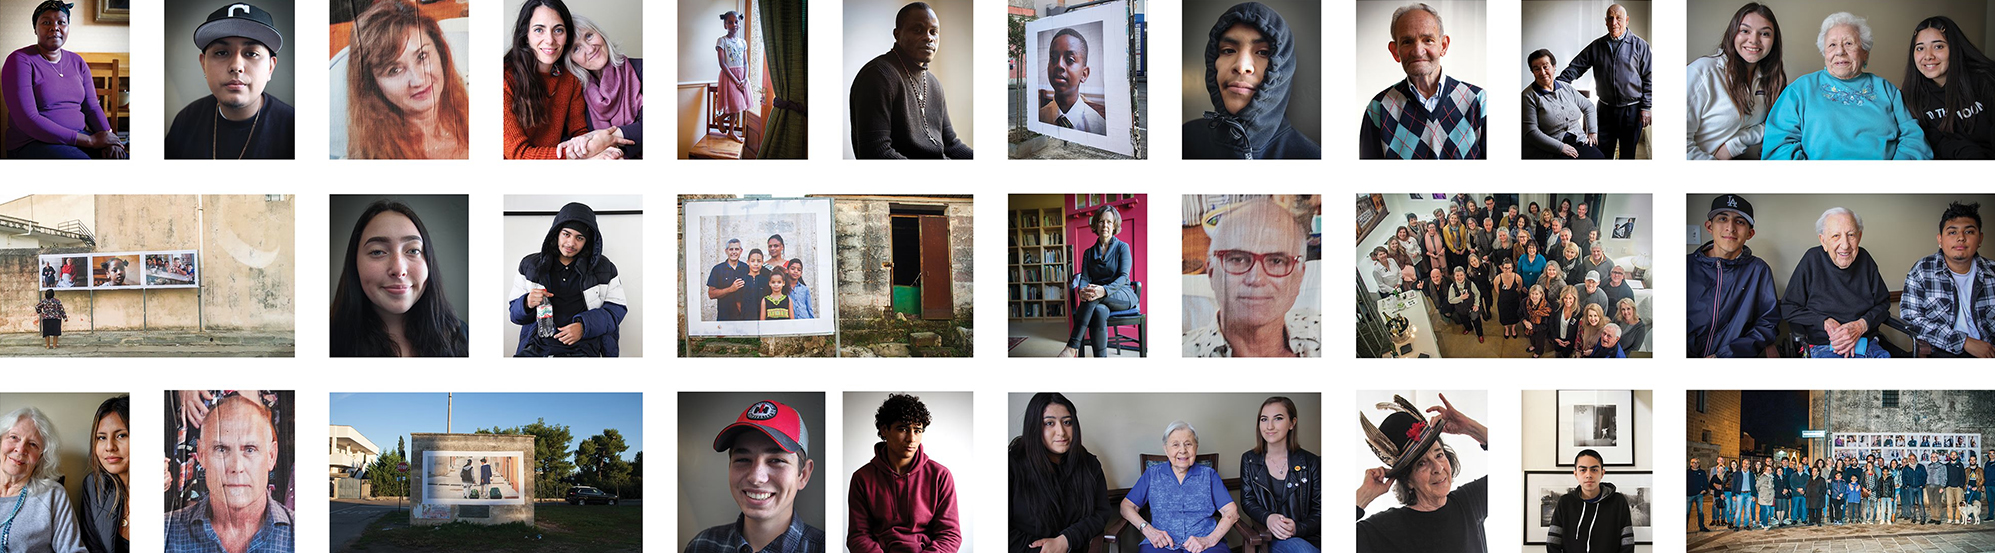 Through fine art portraiture Facing Ourselves continues to drive the important conversation of merging cultures and humane communities.